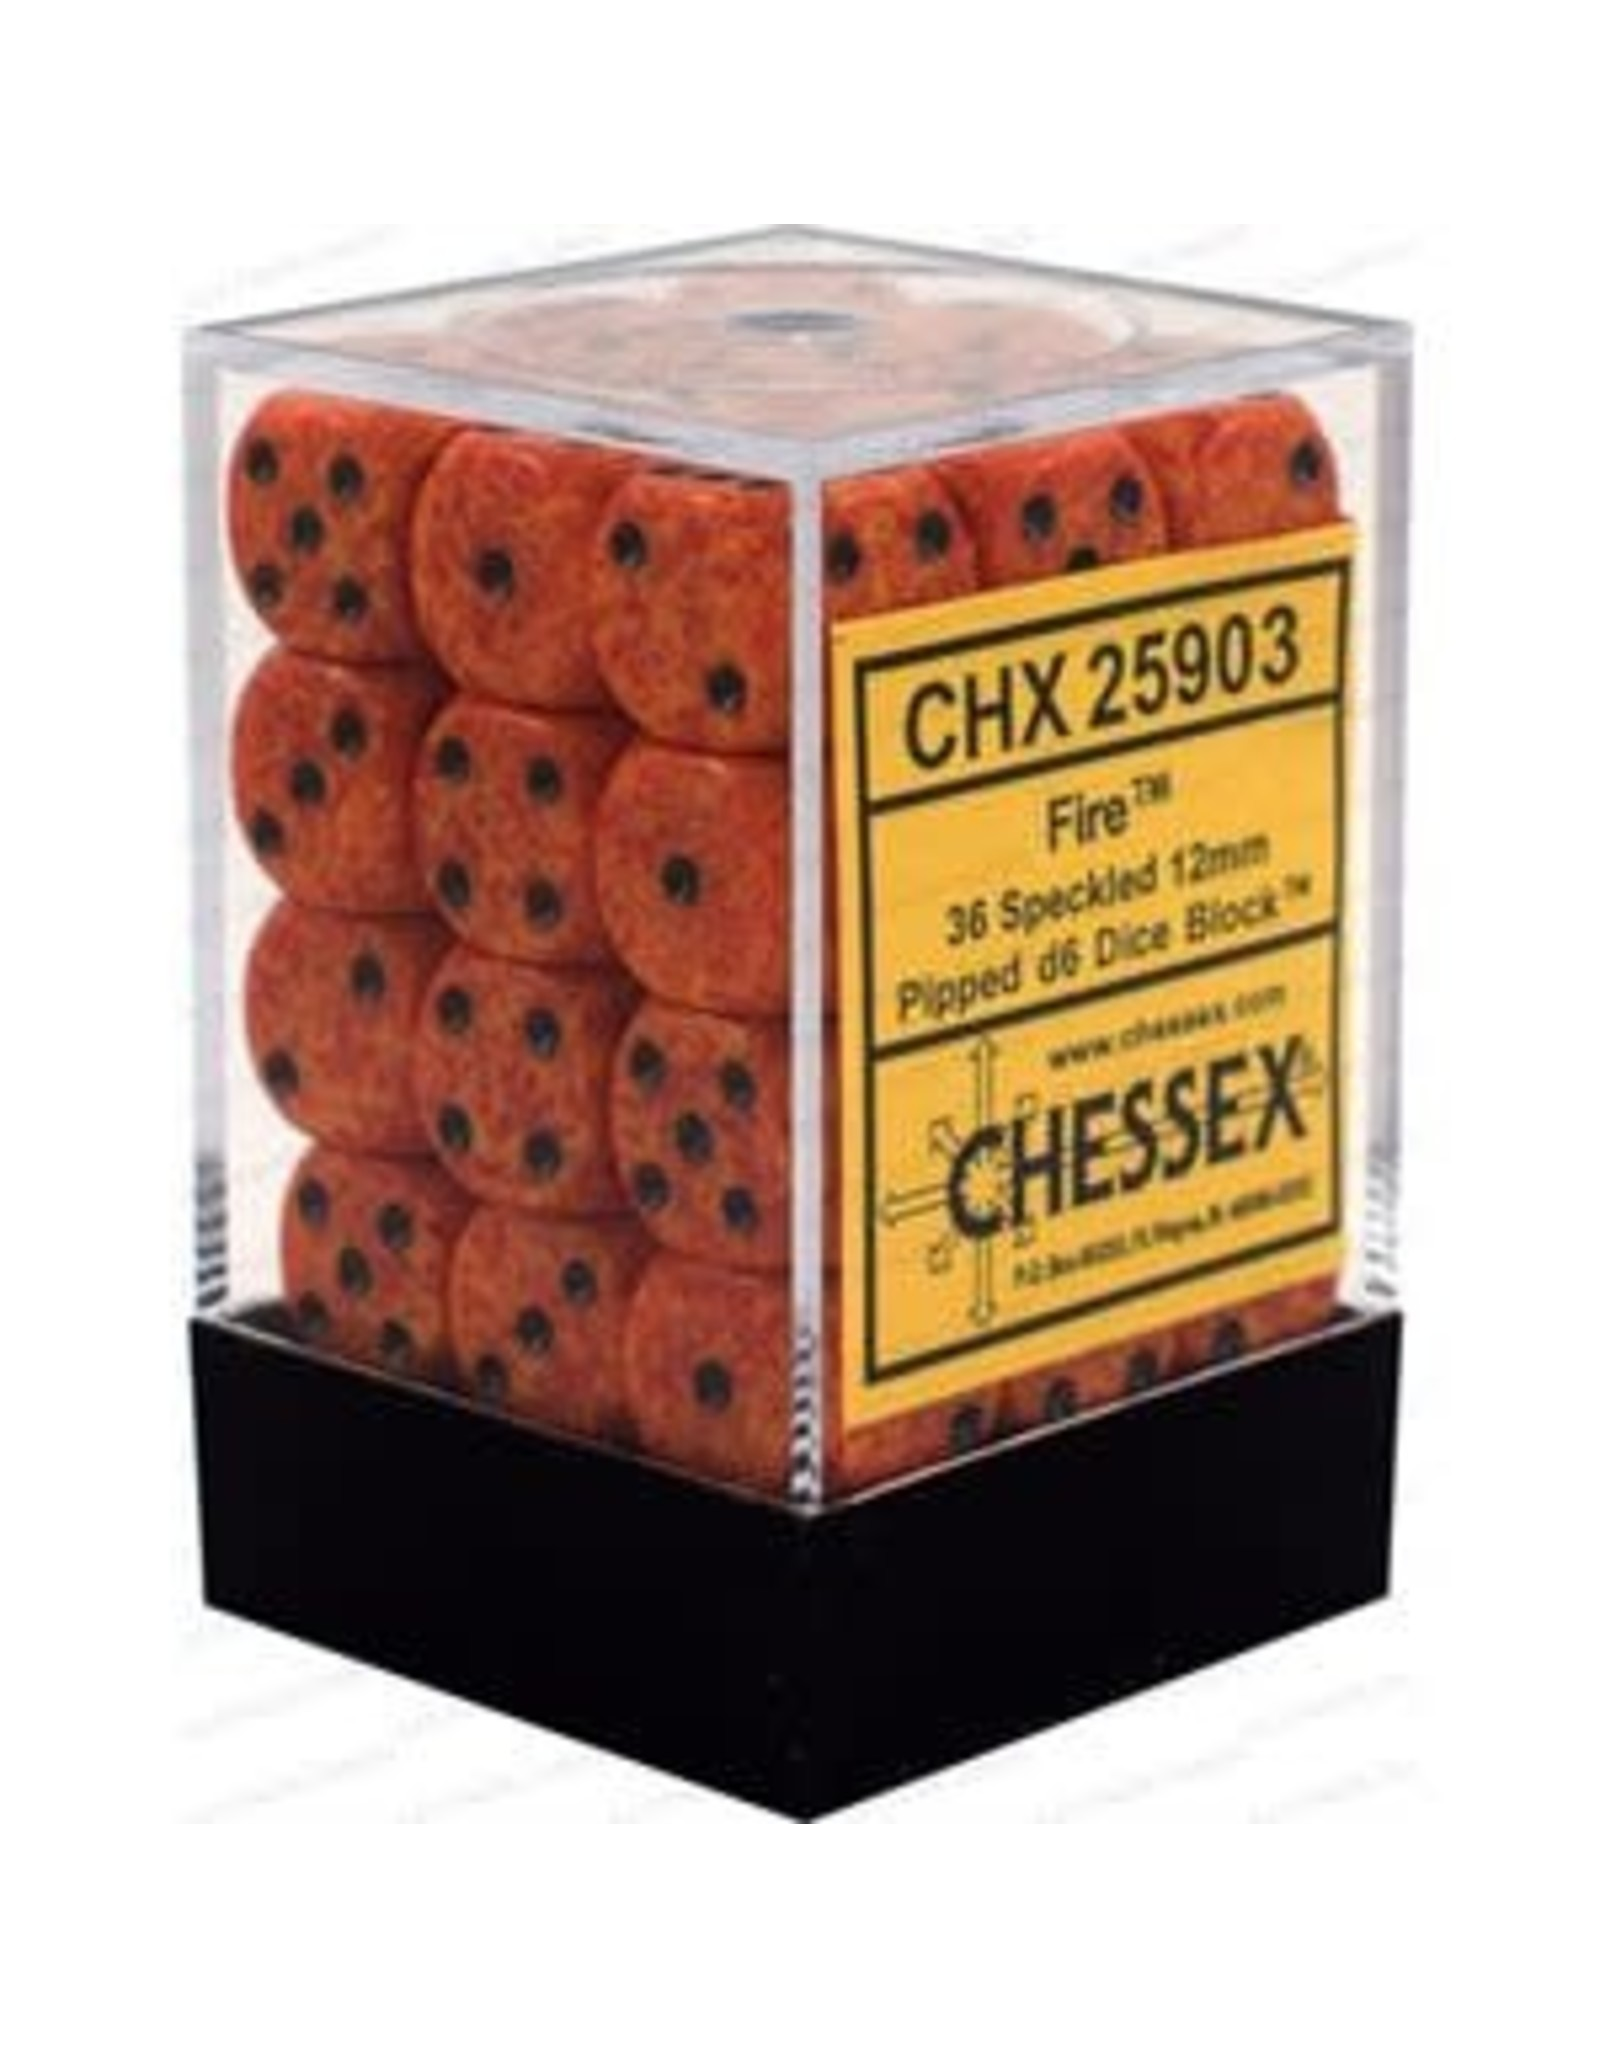 Chessex Chessex Speckled 12mm (36d6)